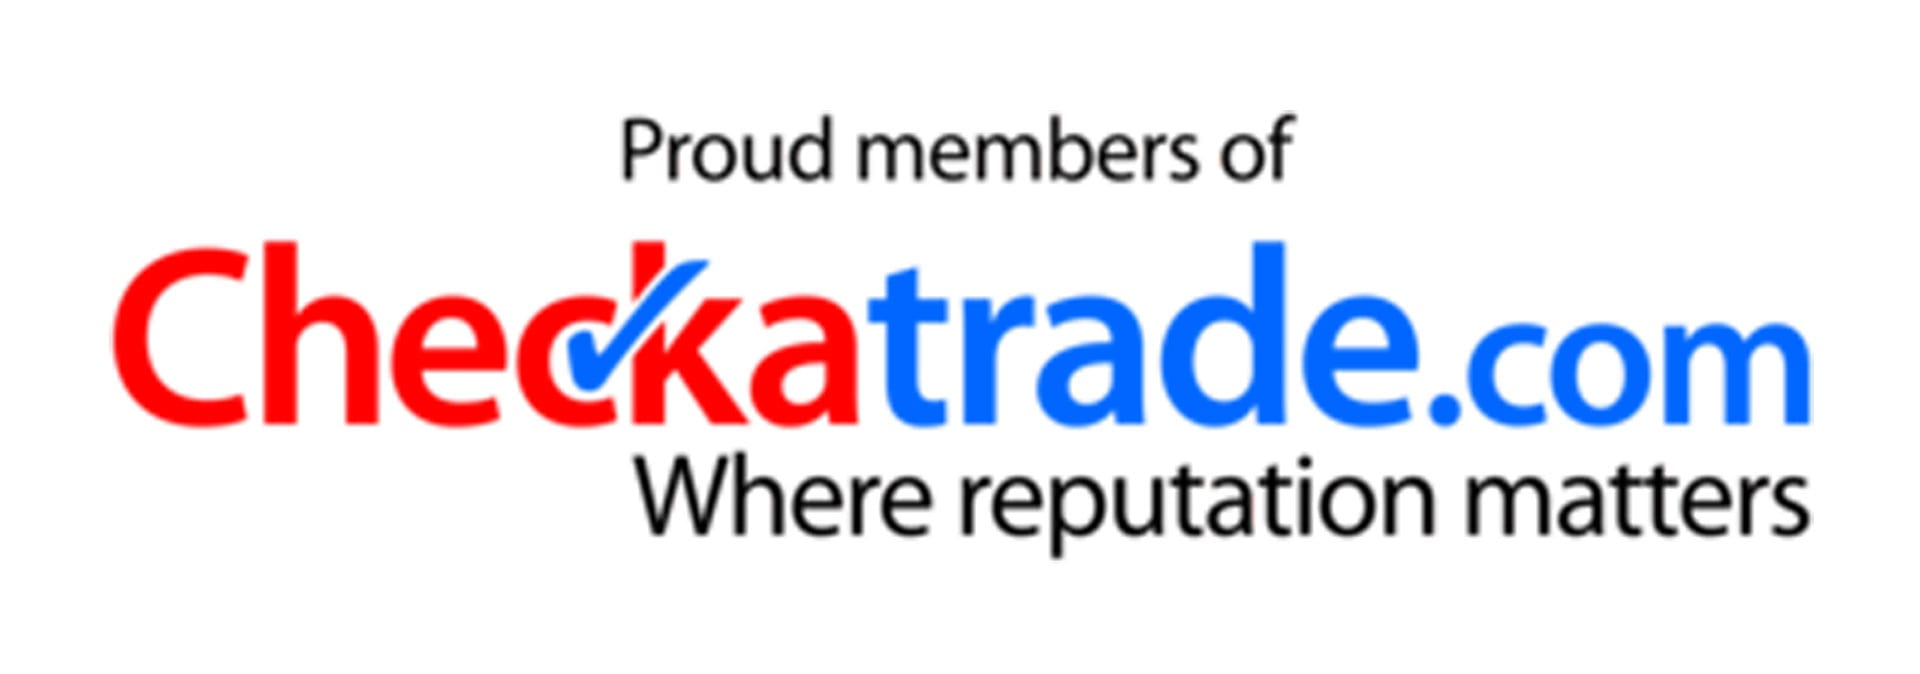 Warrior Locksmiths in Oakwood are proud members of Check a Trade